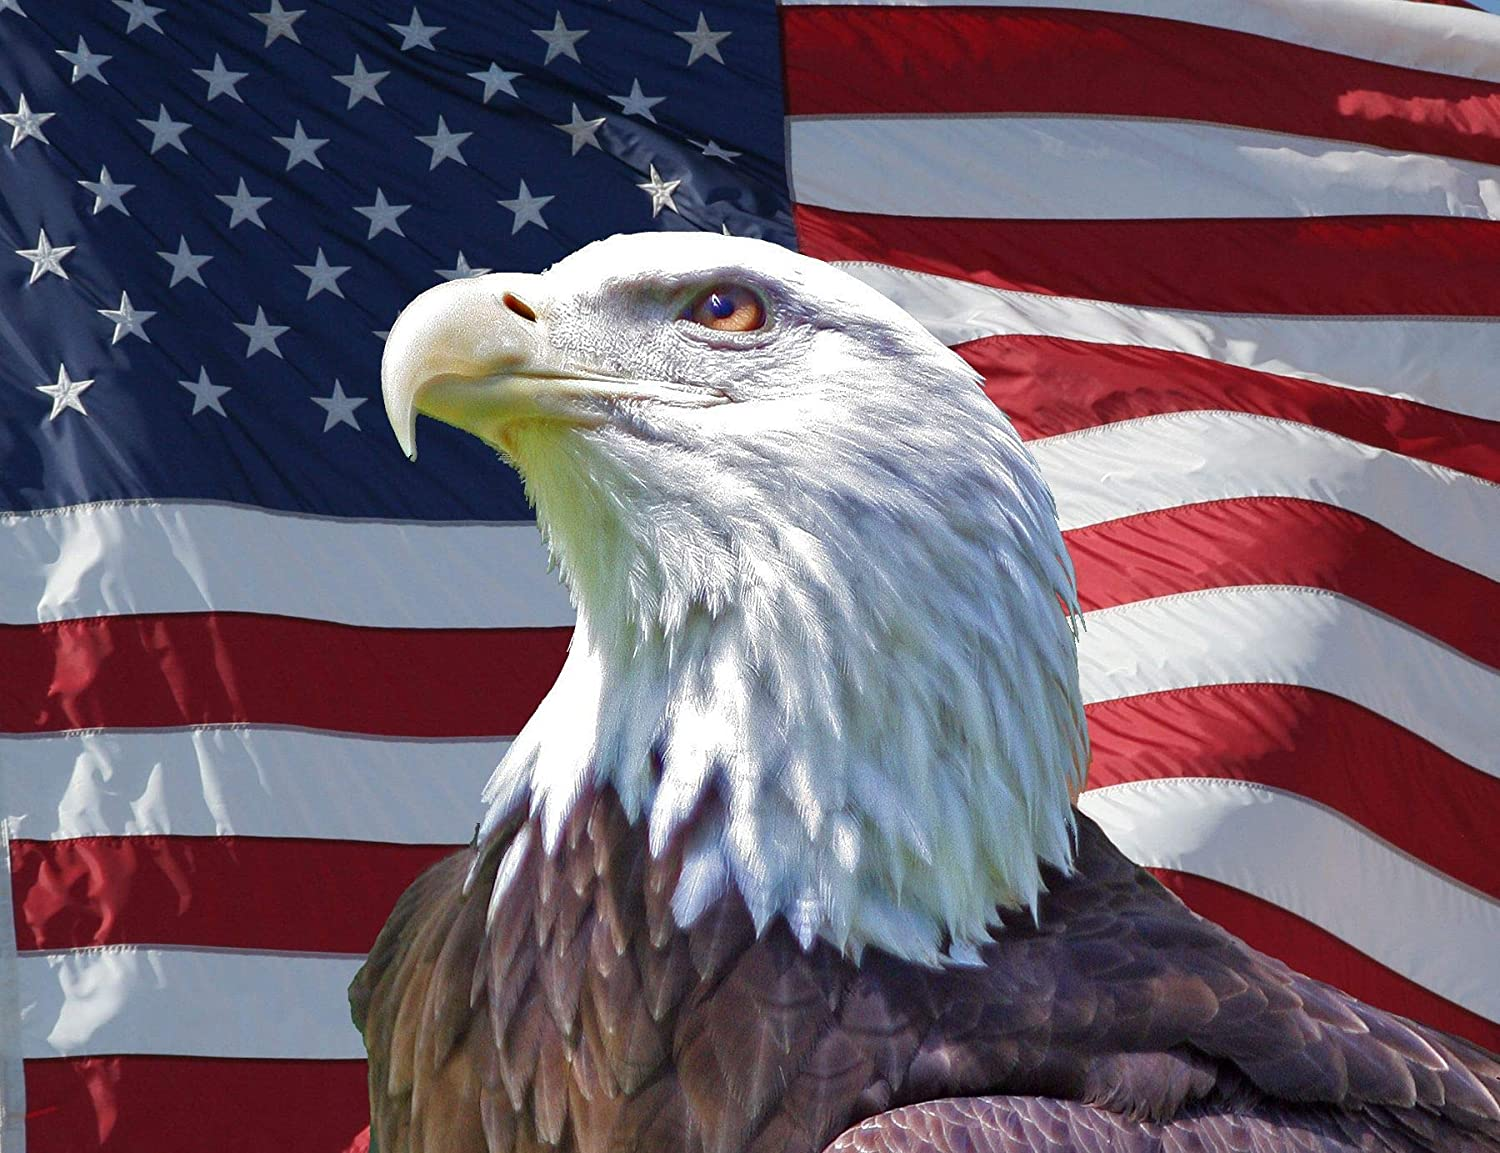 Amazon.com : July 4th Greeting Cards - Patriotic Eagle - PE100. Greeting  Cards with an Image of a Bald Eagle in Front of the American Flag. Box Set  Has 25 Greeting Cards